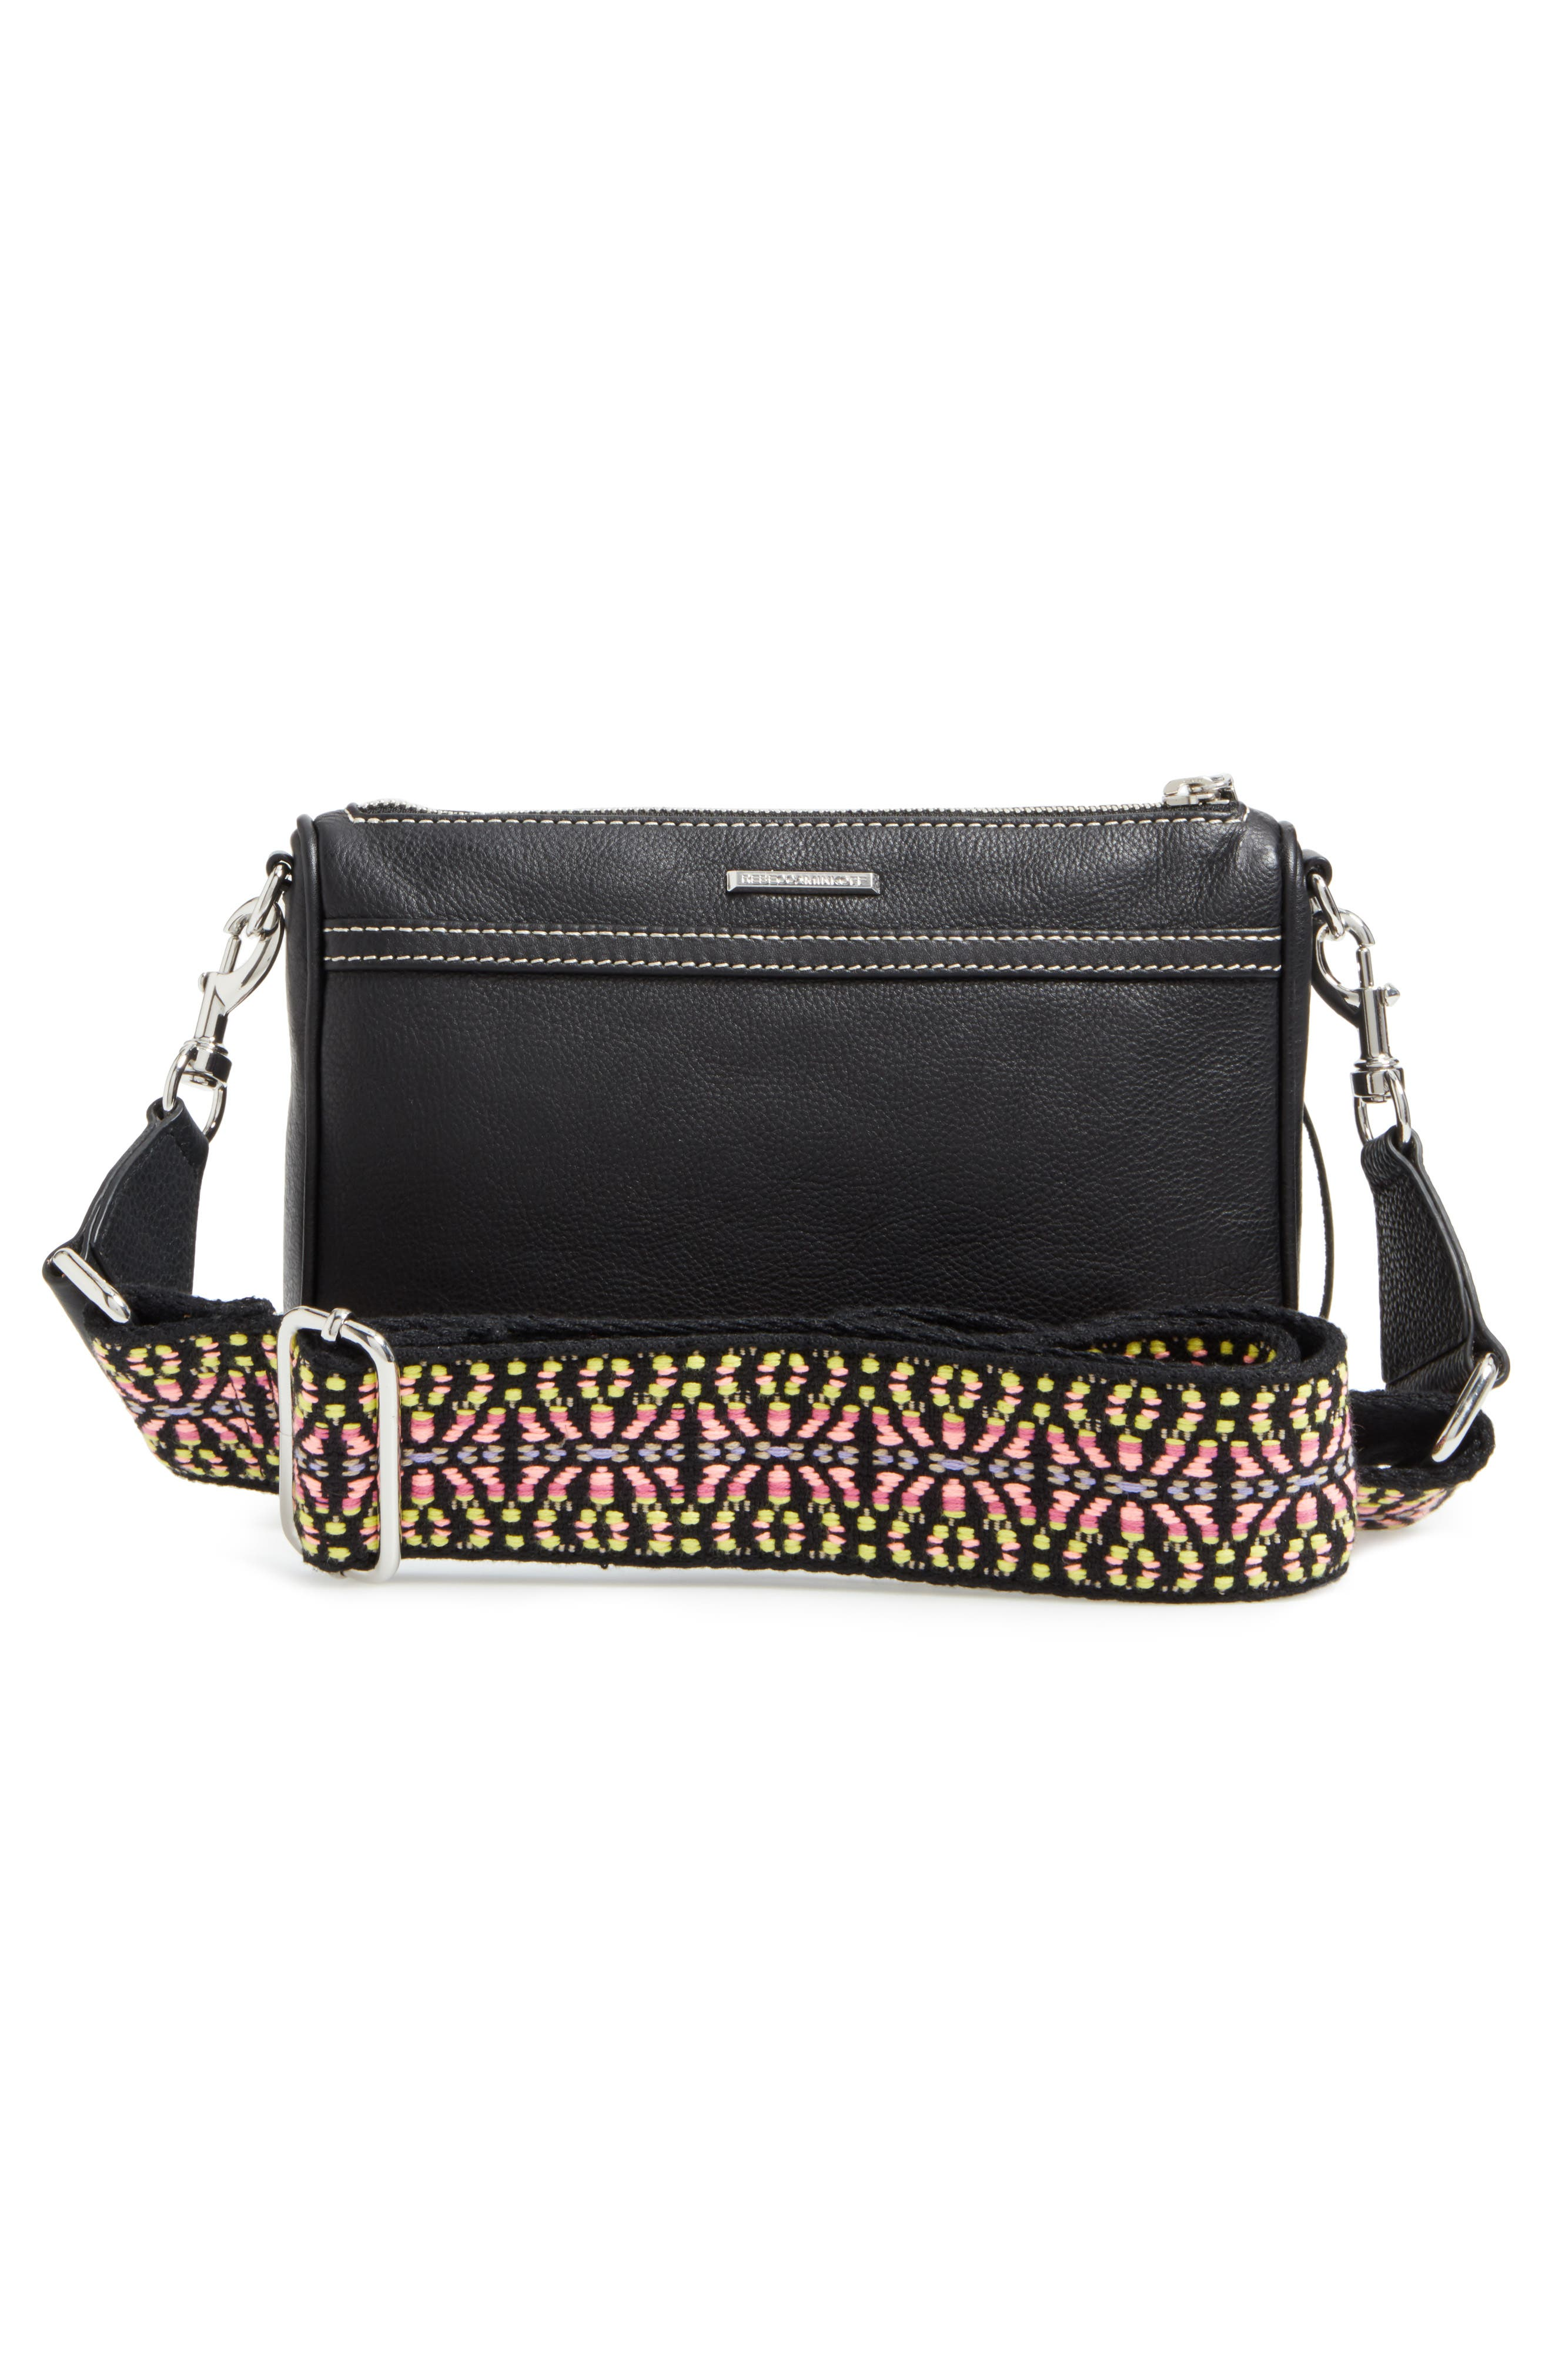 Alternate Image 3  - Rebecca Minkoff Mini MAC Leather Crossbody Bag with Guitar Strap (Nordstrom Exclusive)